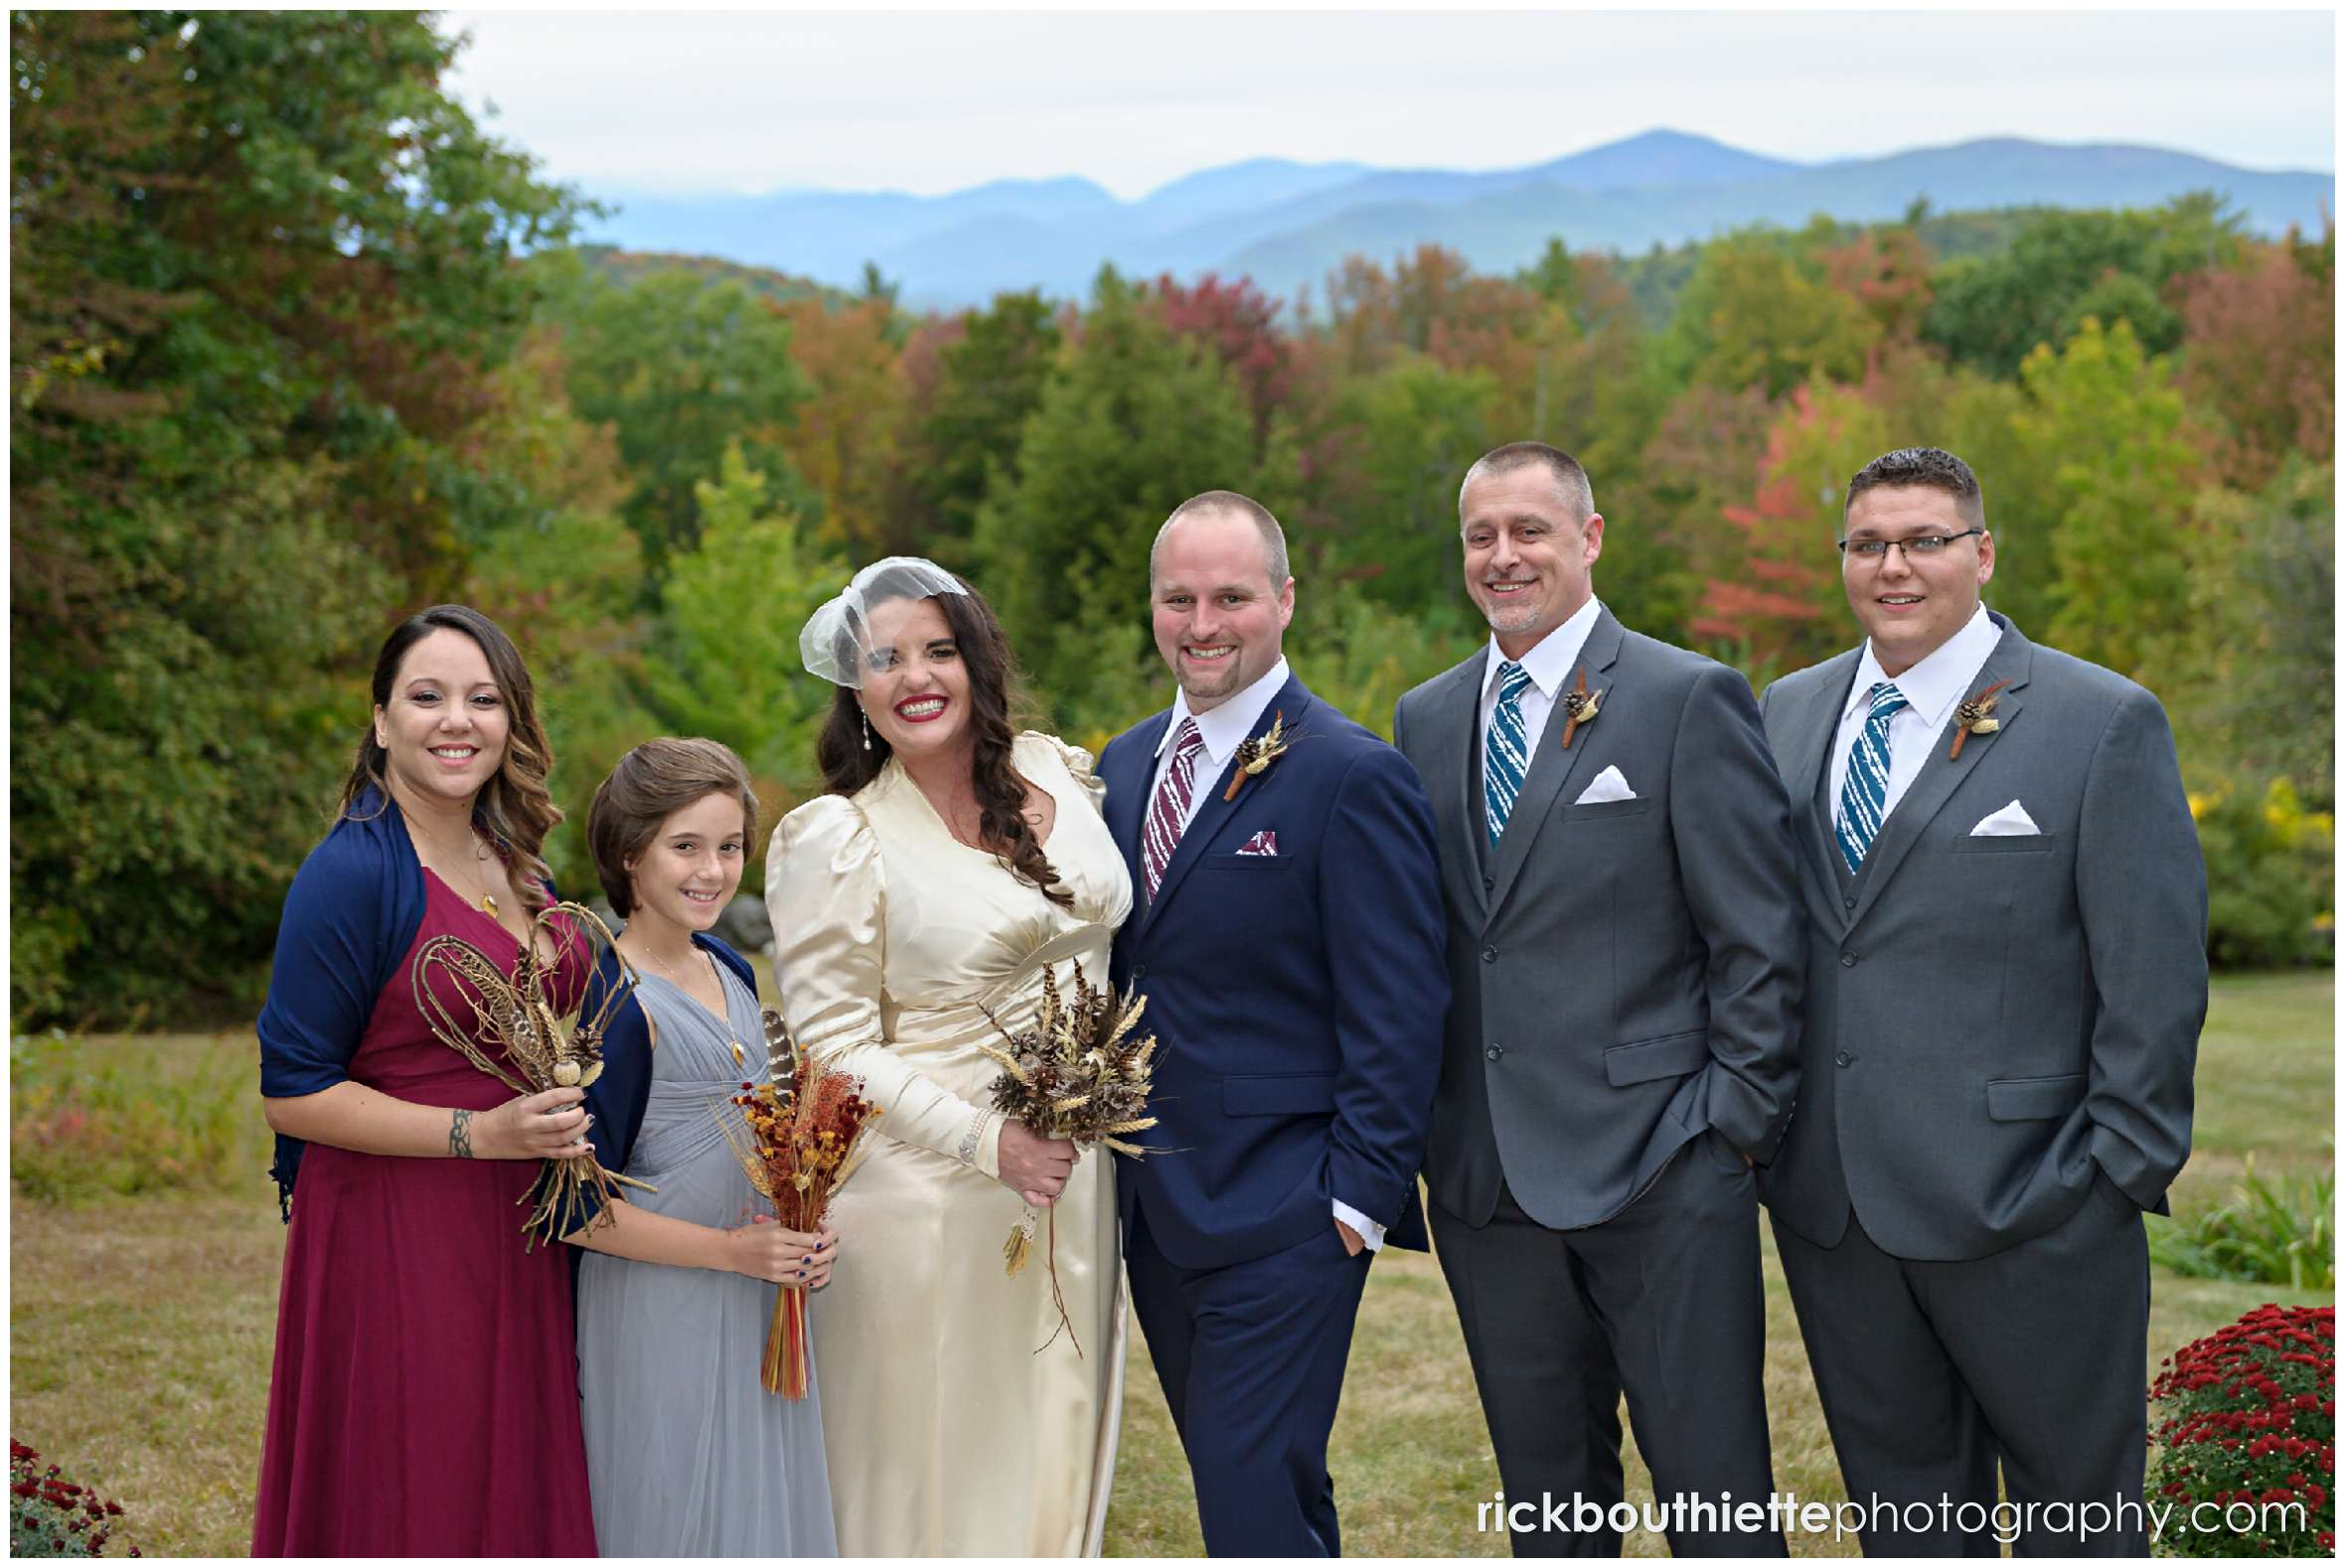 wedding party with fall foliage in background at Snowvillage Inn wedding